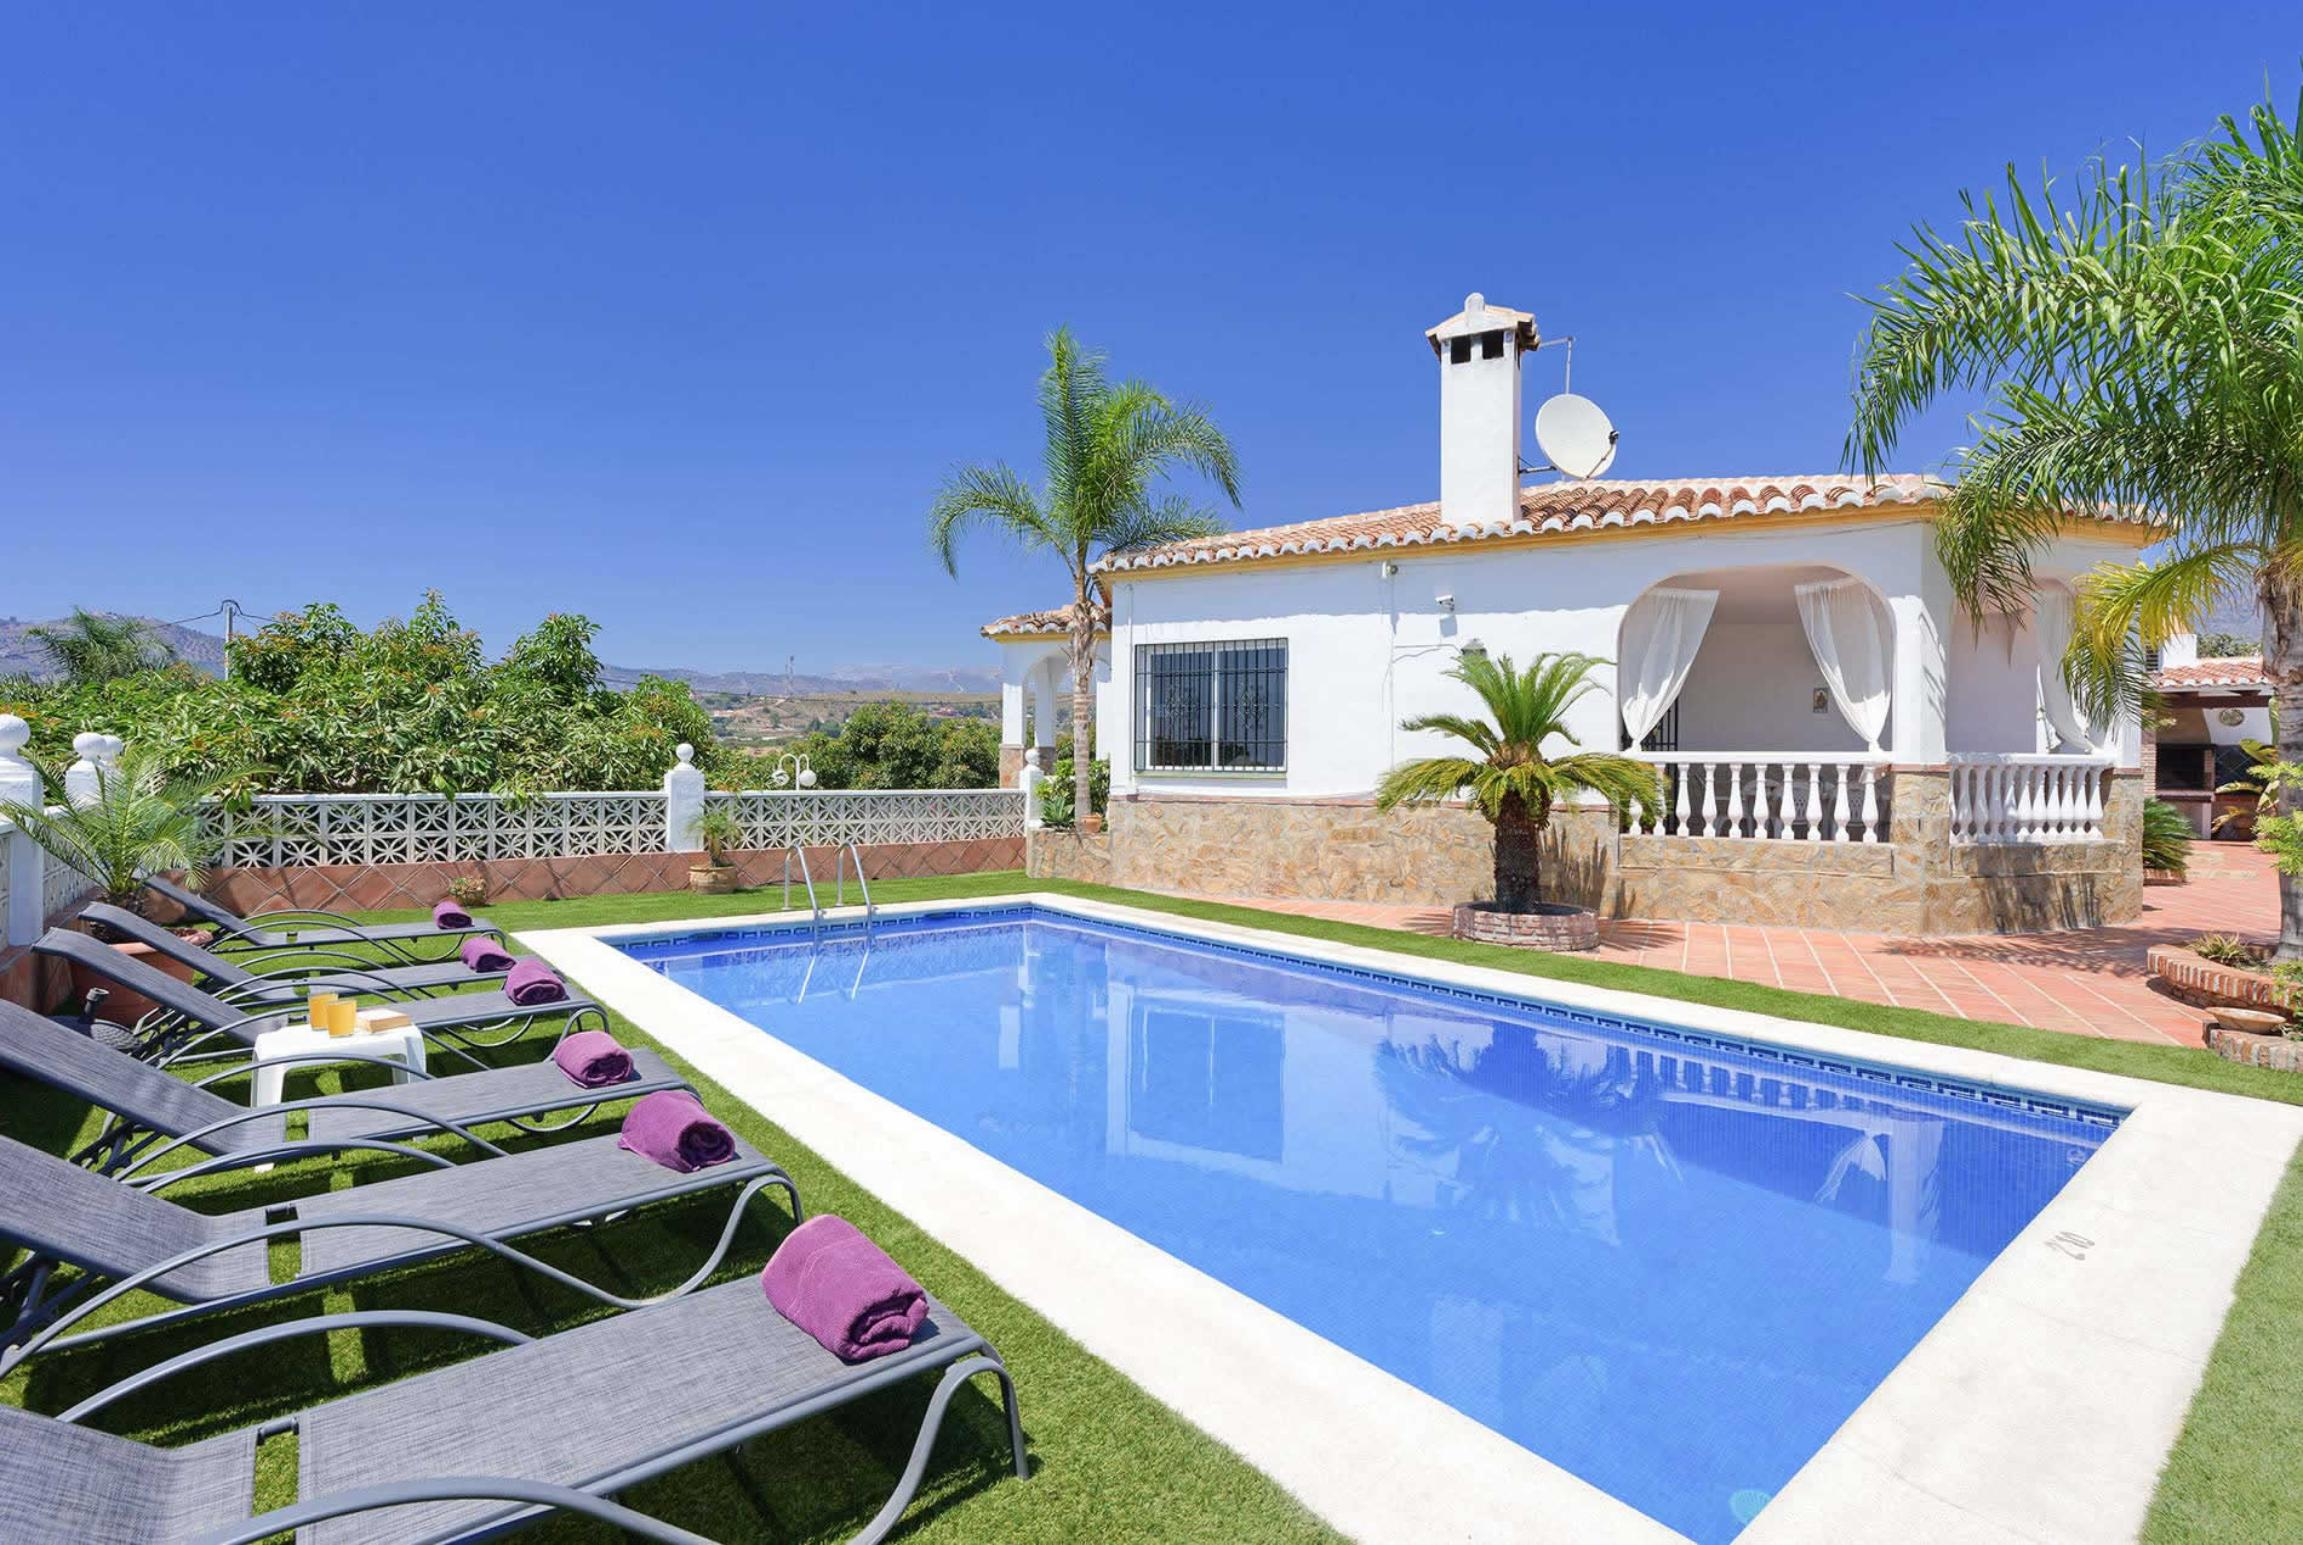 Read more about Inma villa